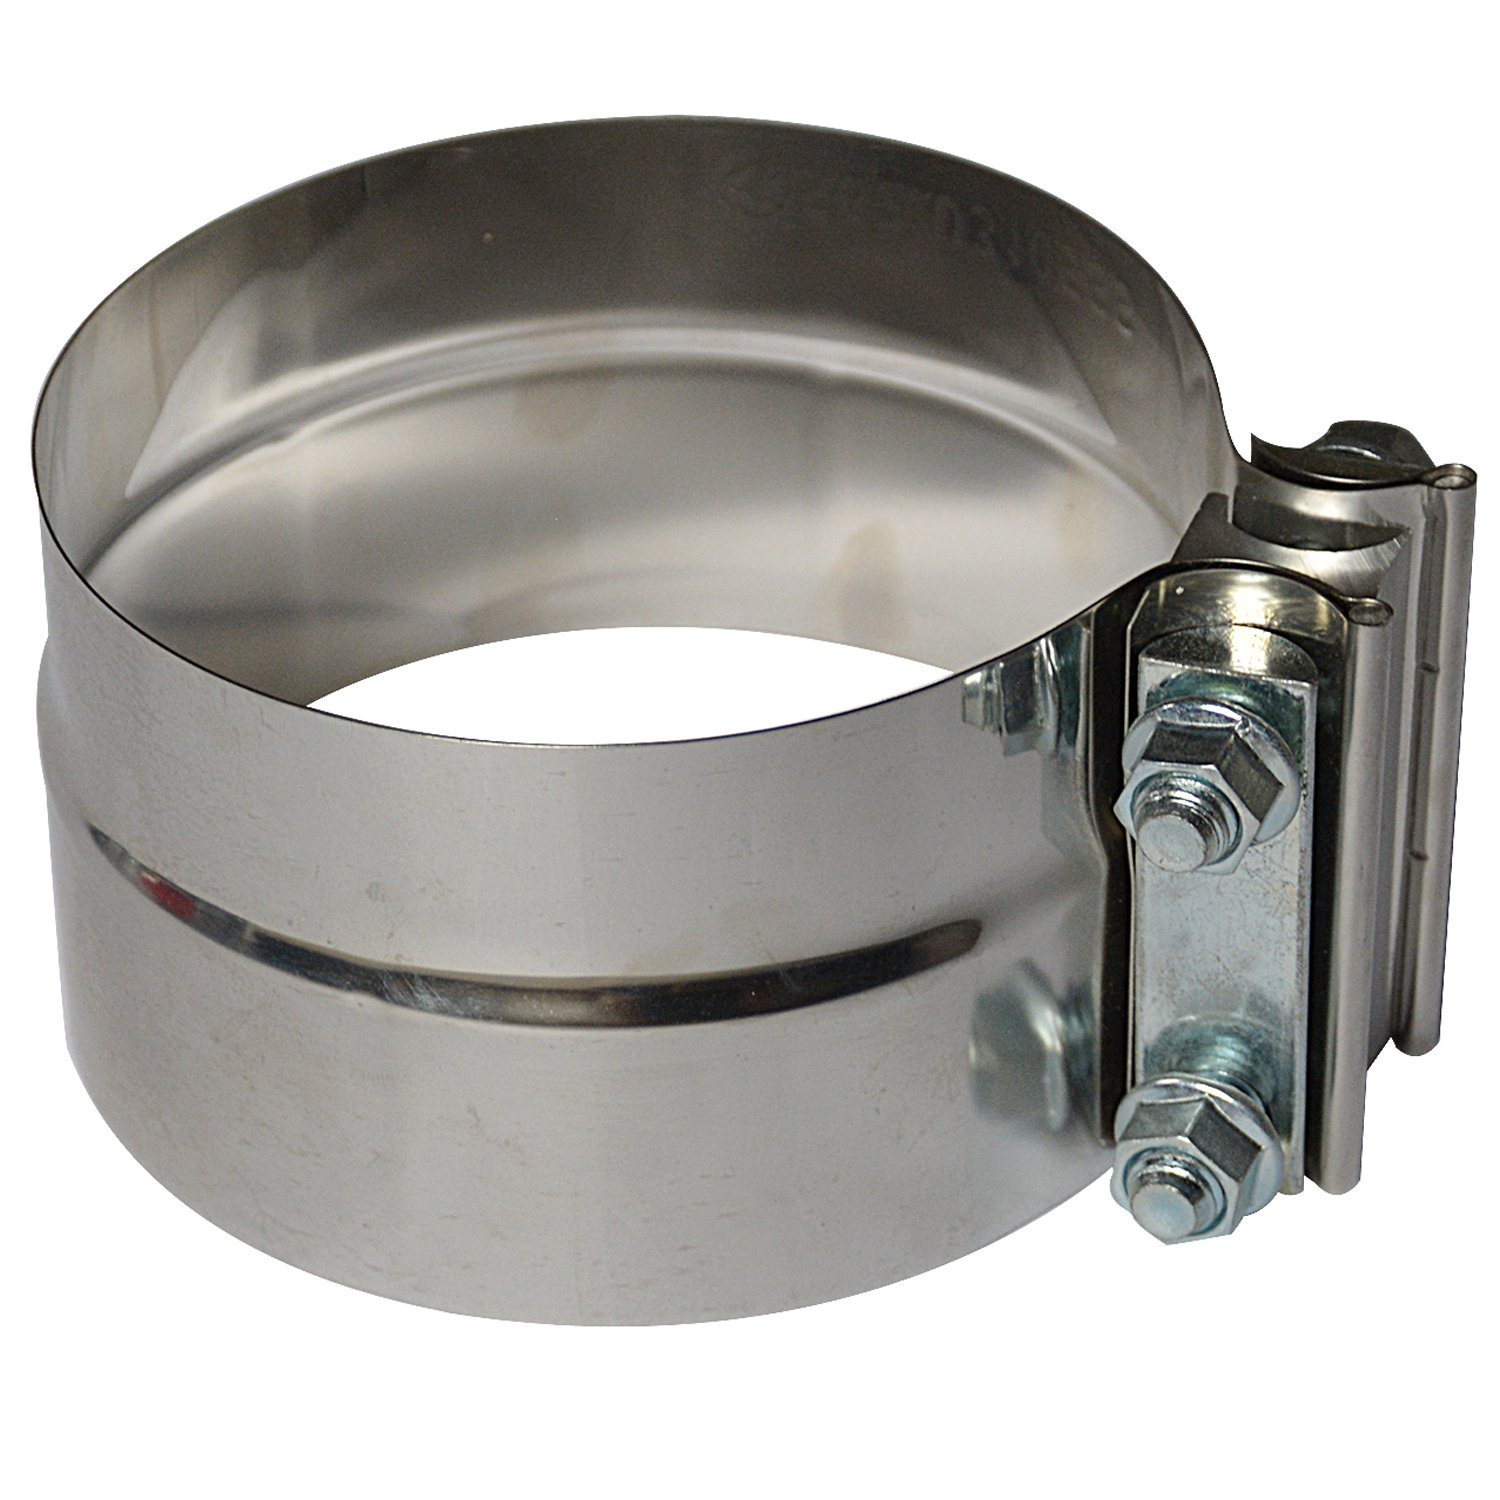 3.5'' Lap Joint Exhaust Band Clamp - Preformed Stainless Steel for 3.5'' ID to 3.5'' OD Exhaust Pipe Connection